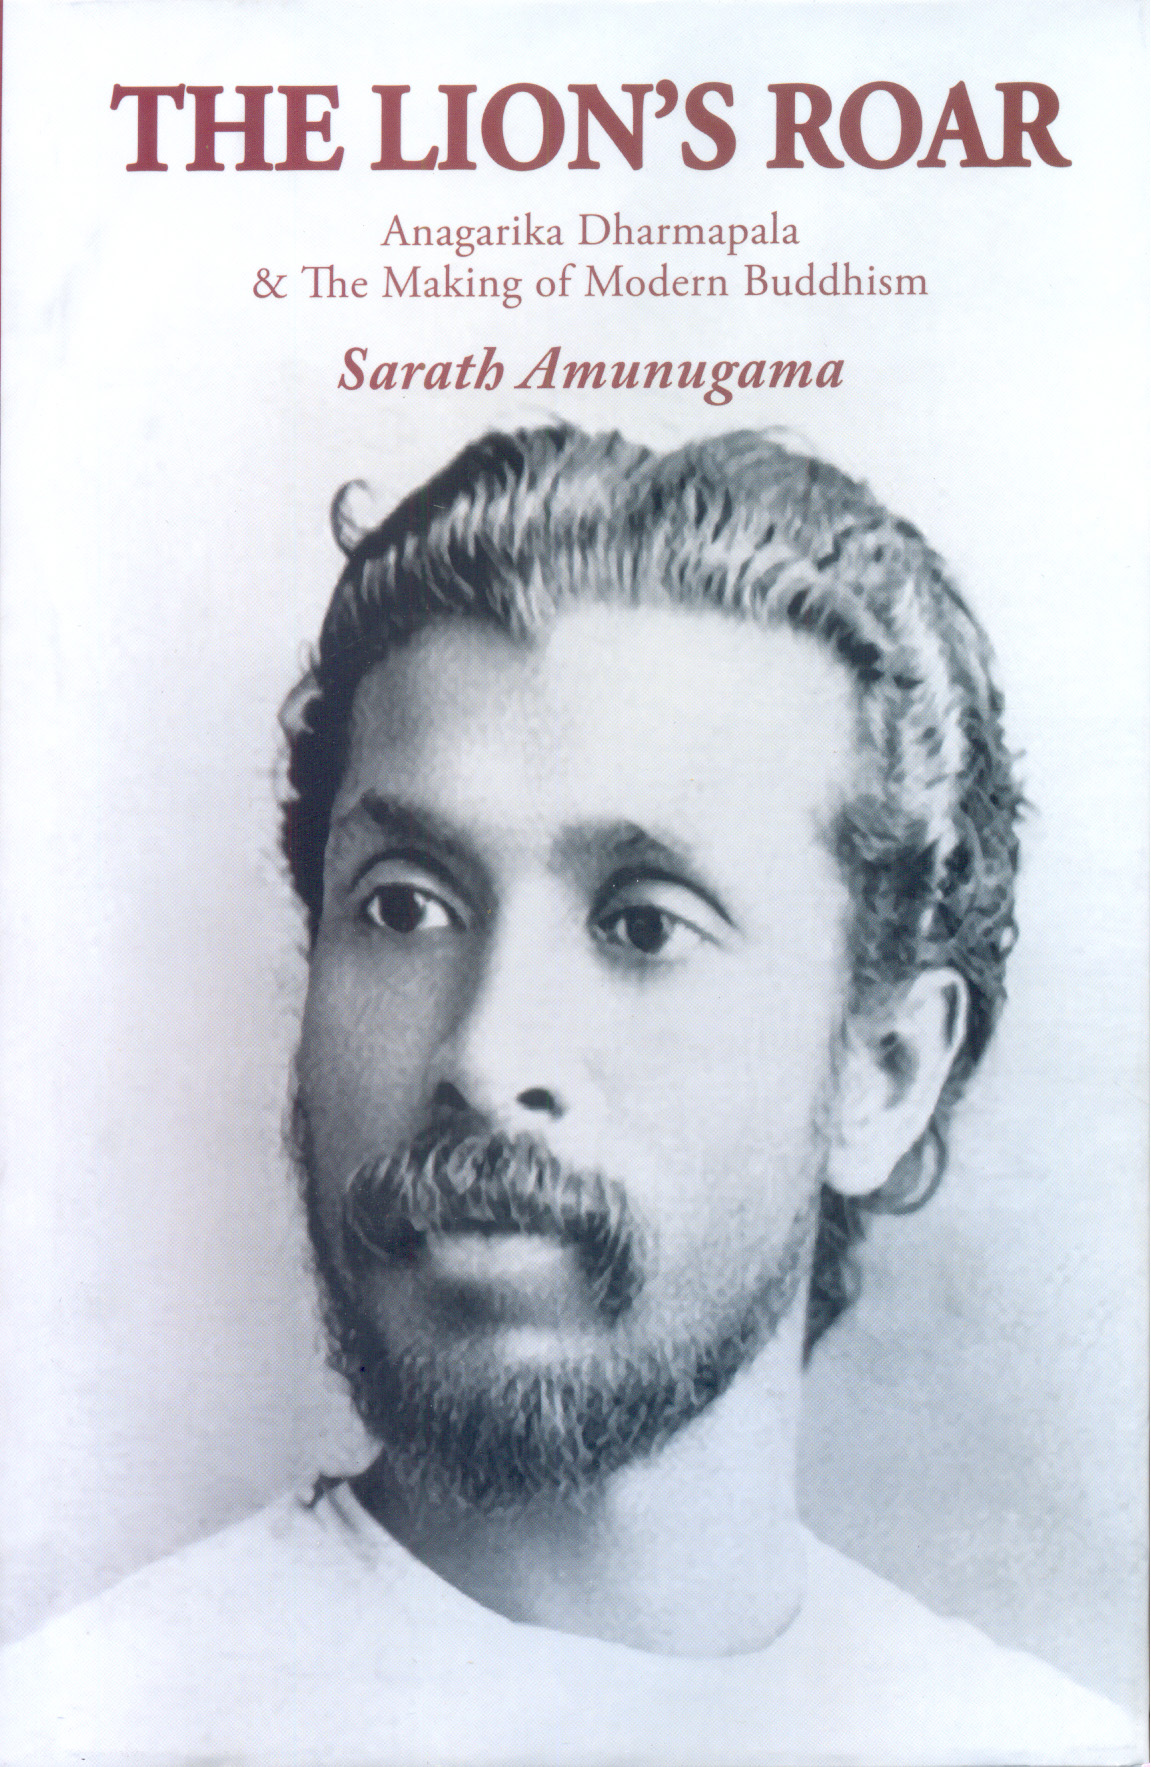 Lions Roar : Anagarika Dharmapala & The Making Of Modern Buddhism